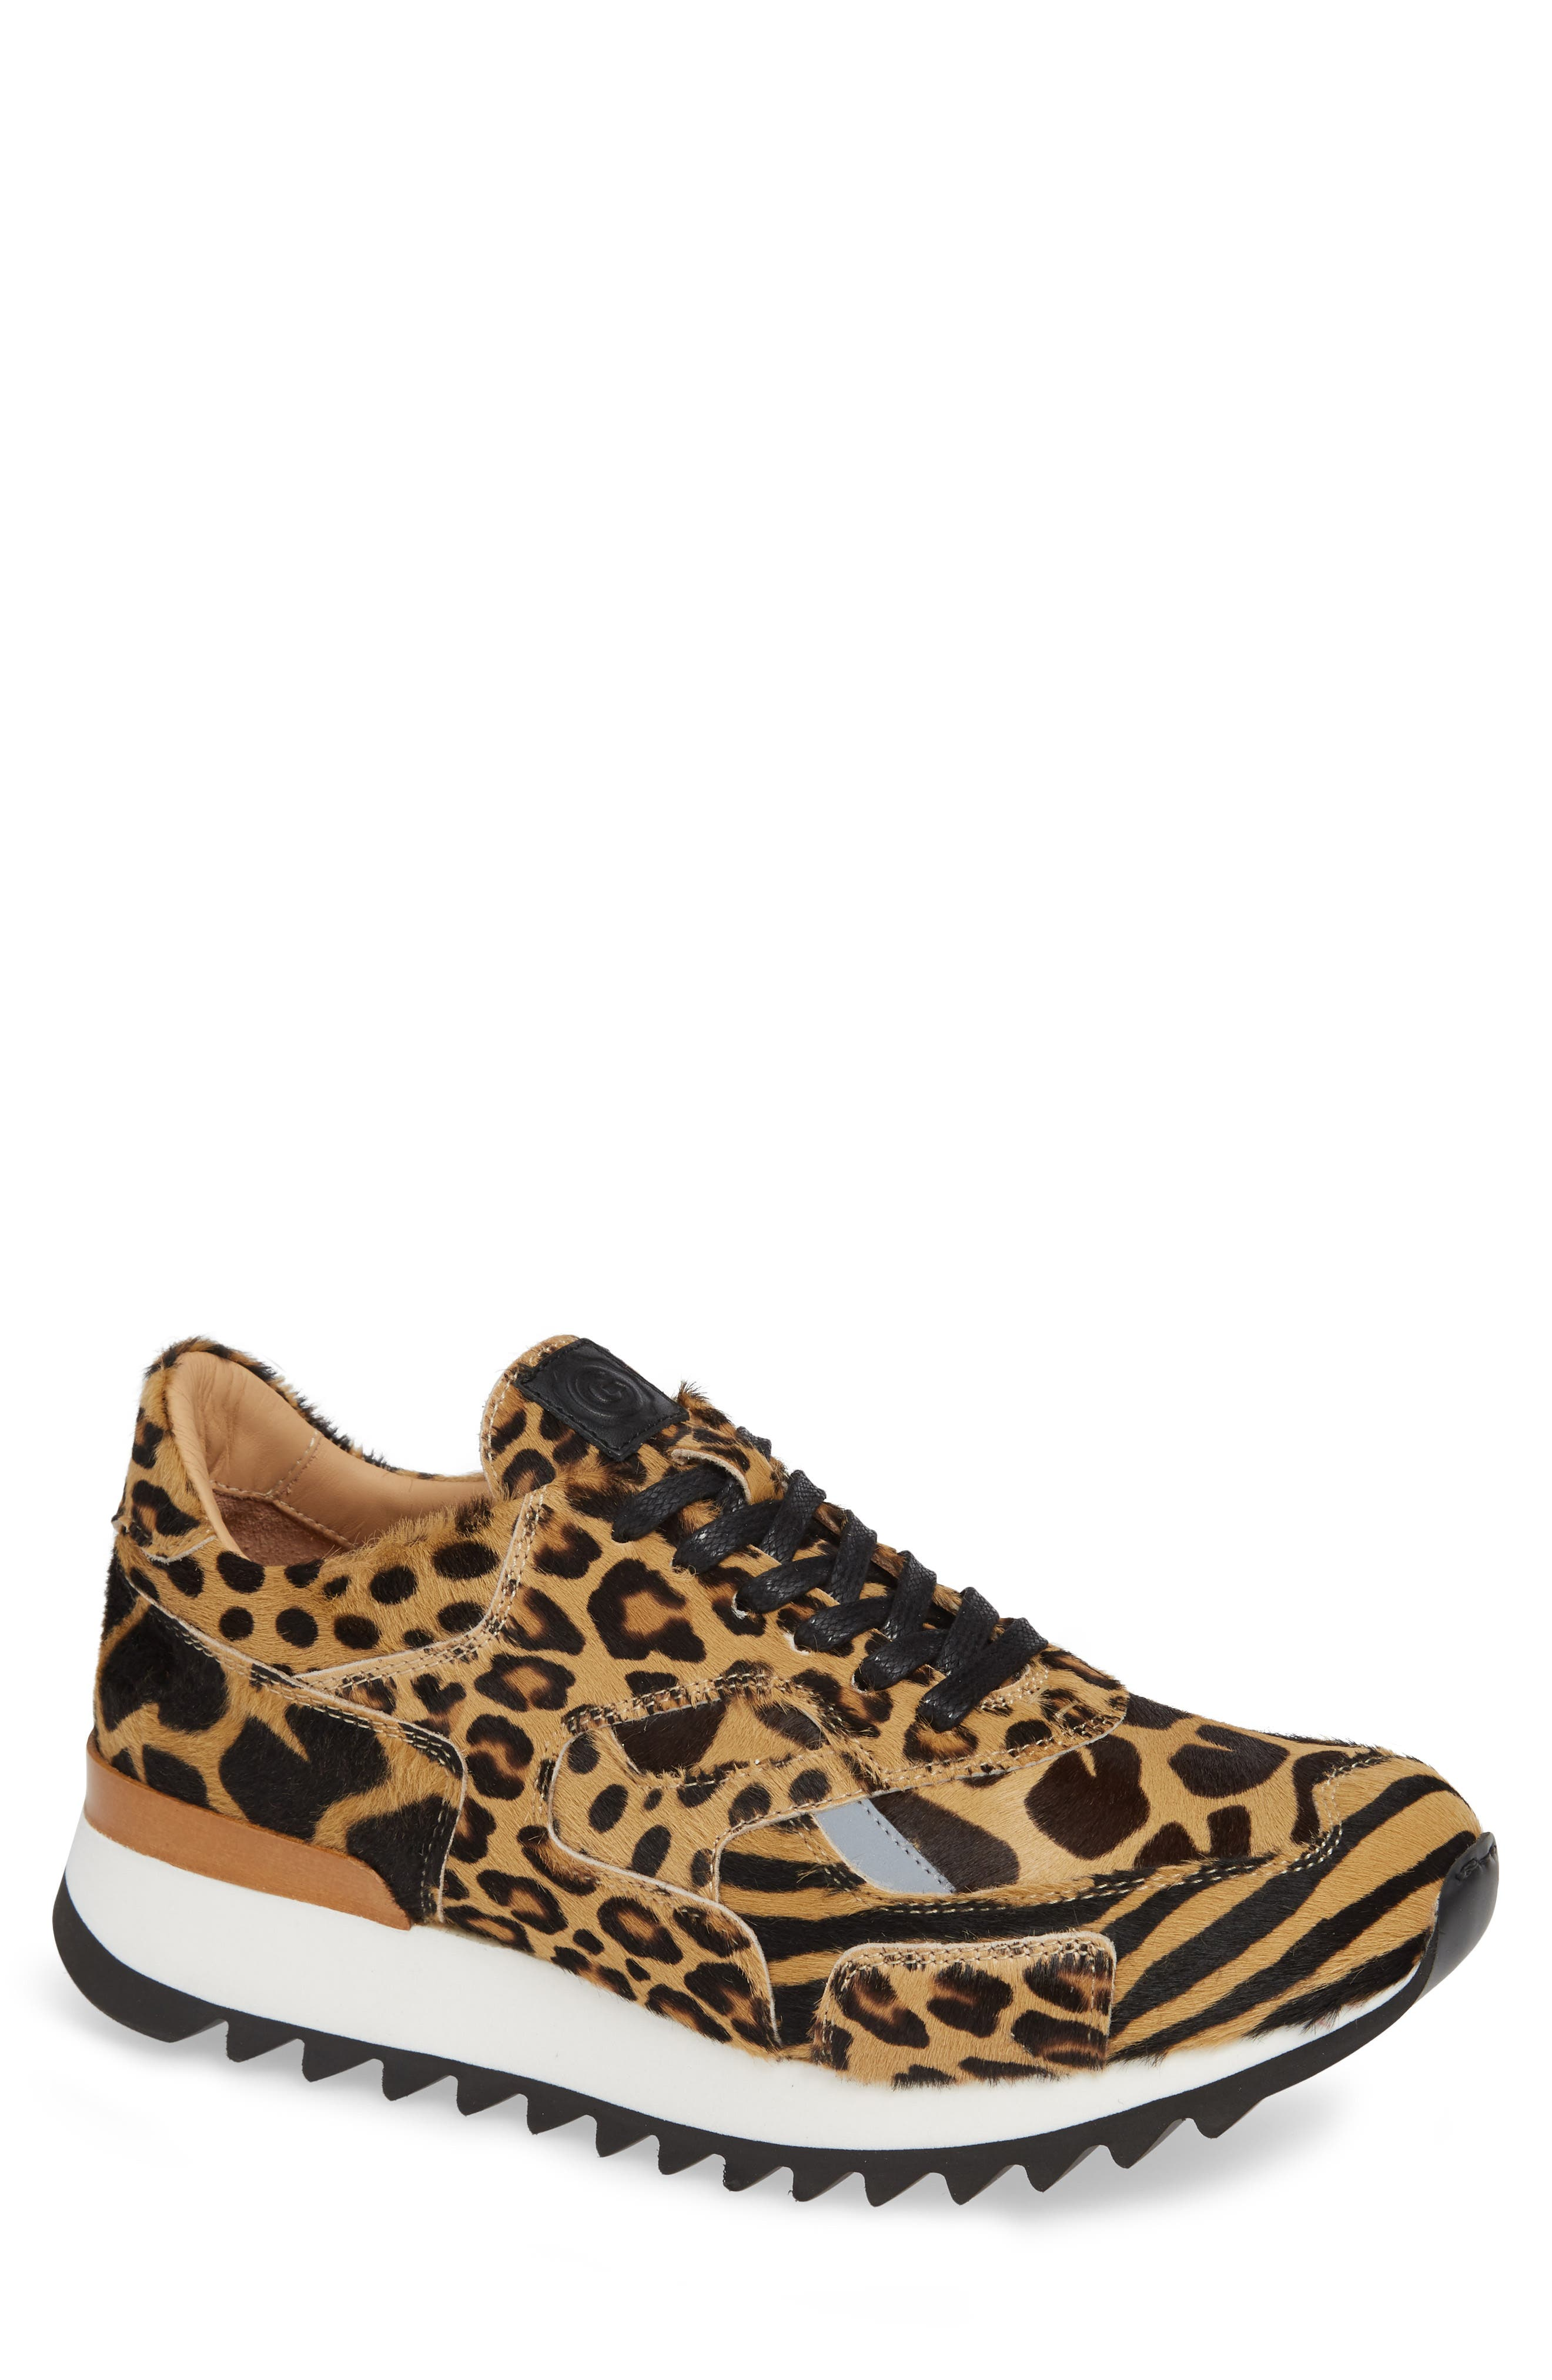 Nick Wooster x GREATS Pronto Genuine Calf Hair Sneaker, Main, color, 209